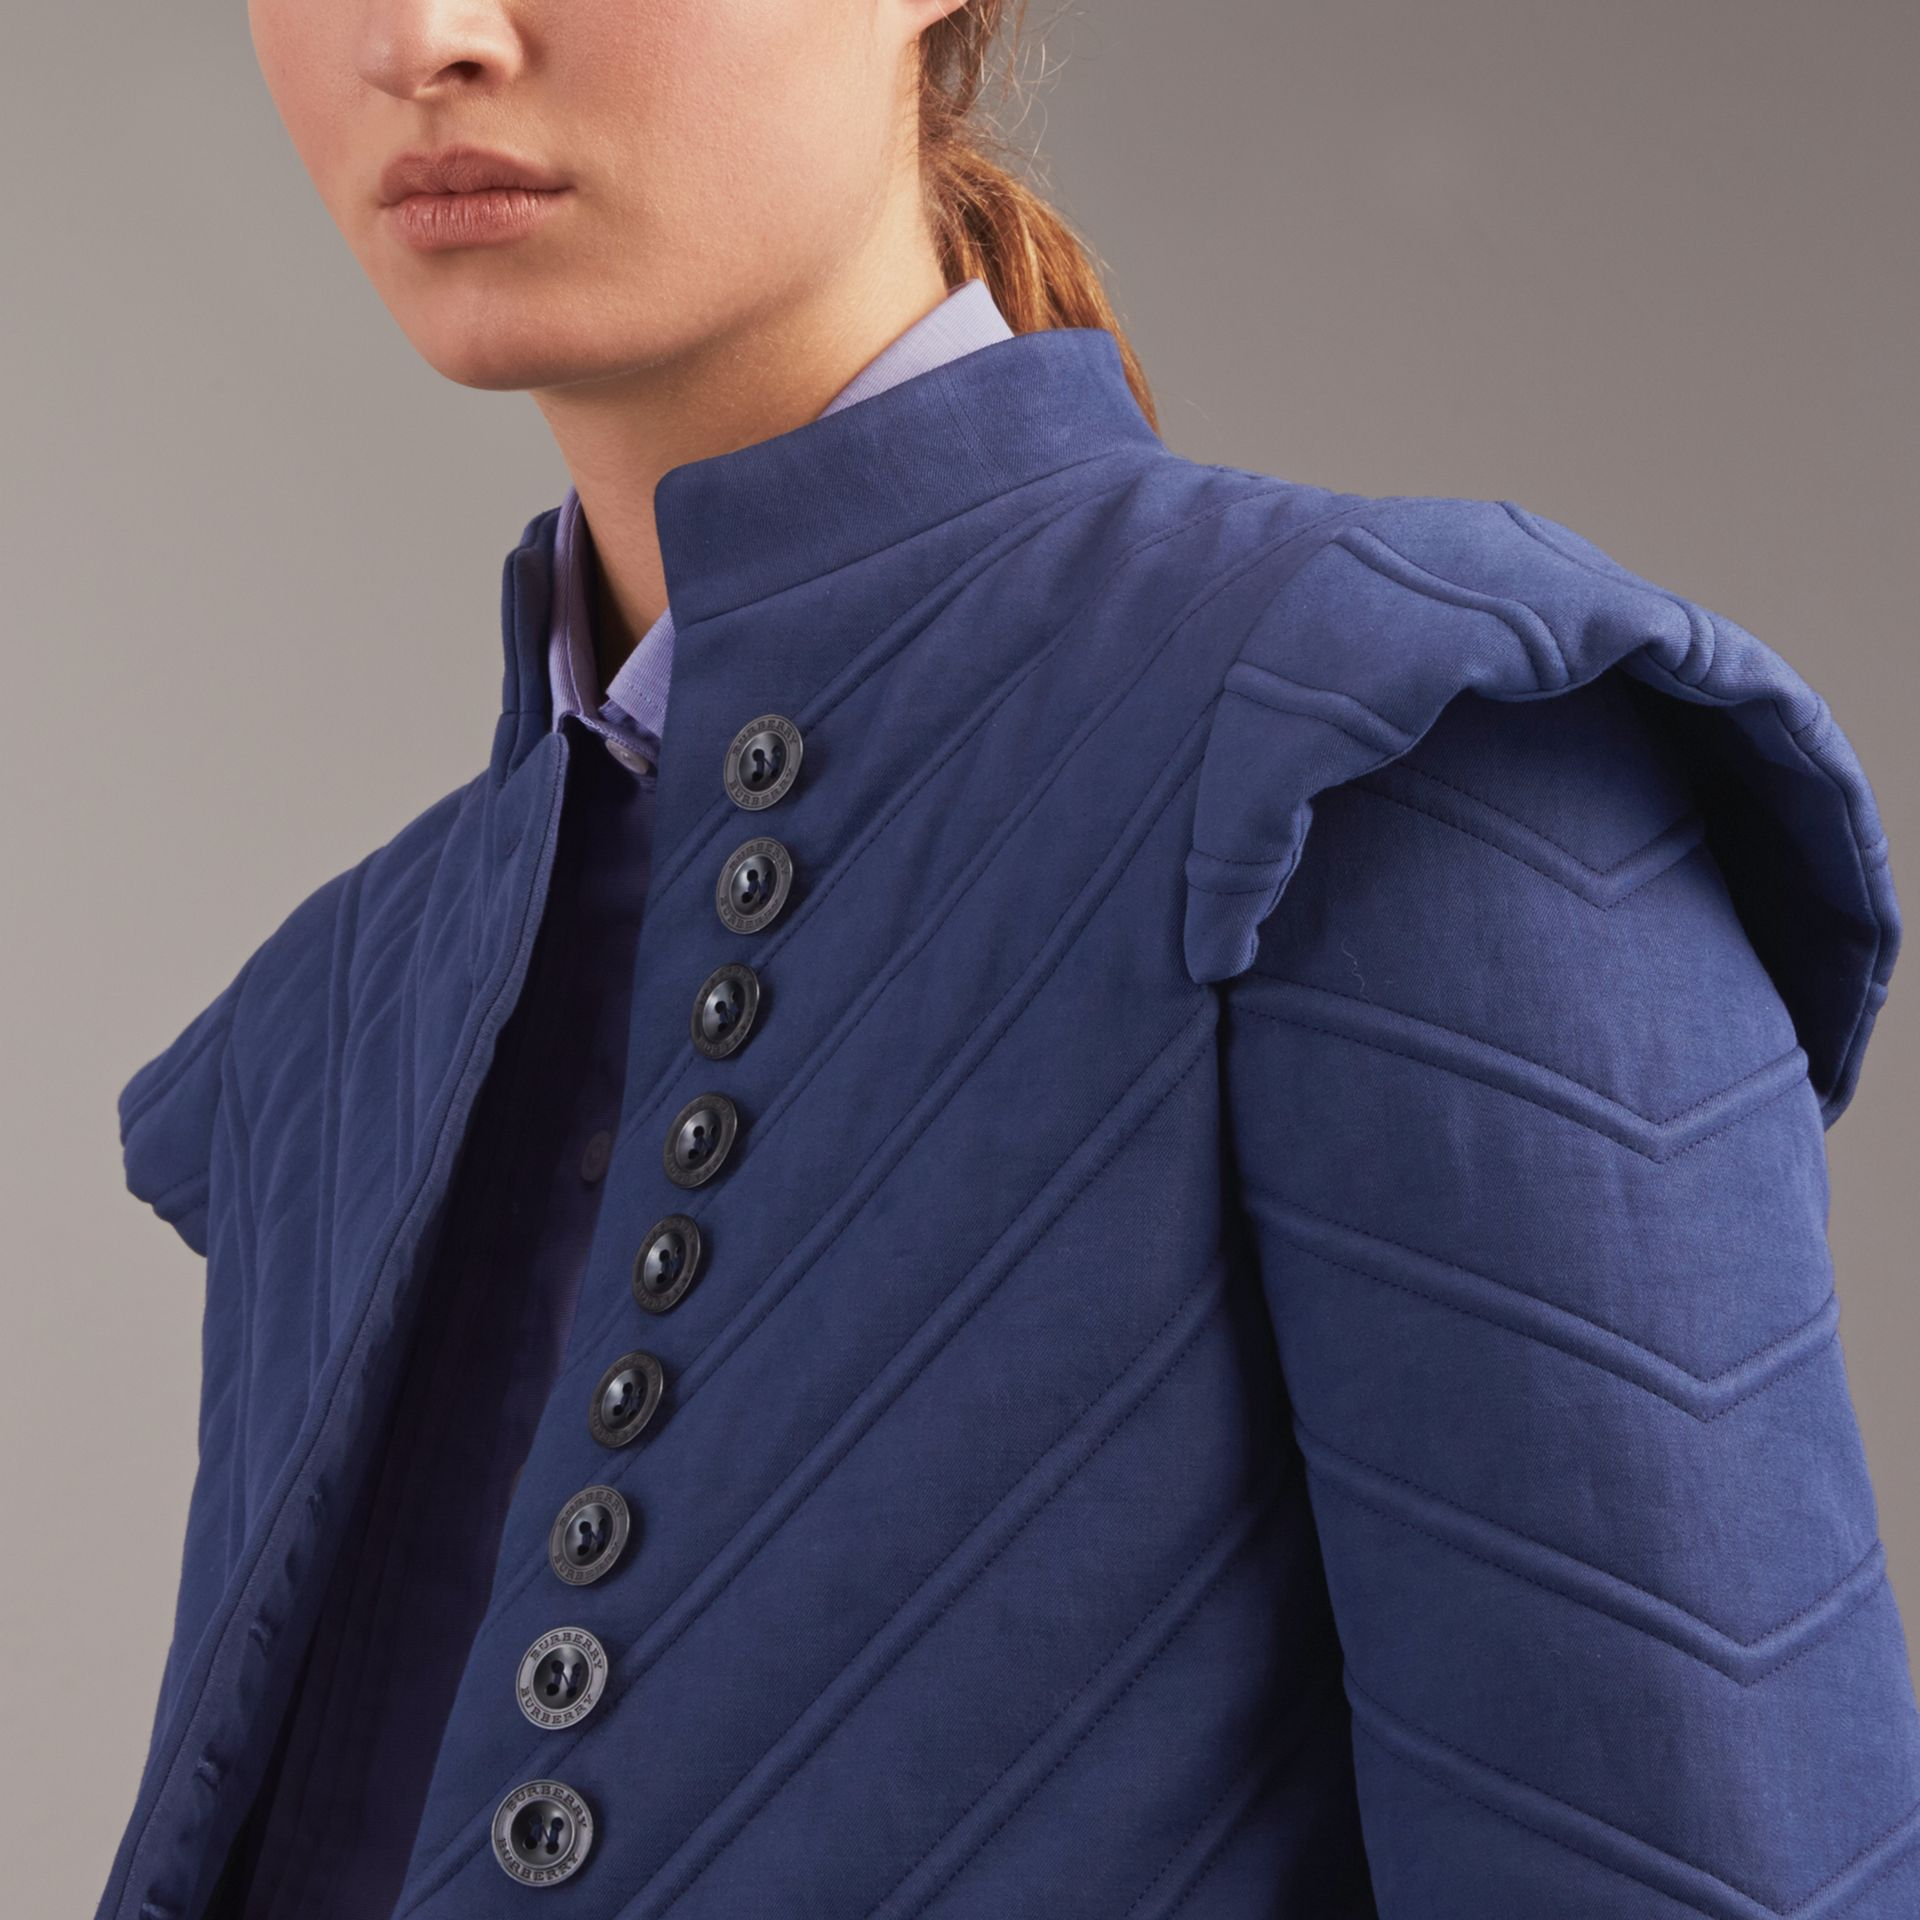 Quilted Ramie Cotton Military Jacket in Indigo - Women | Burberry - gallery image 6